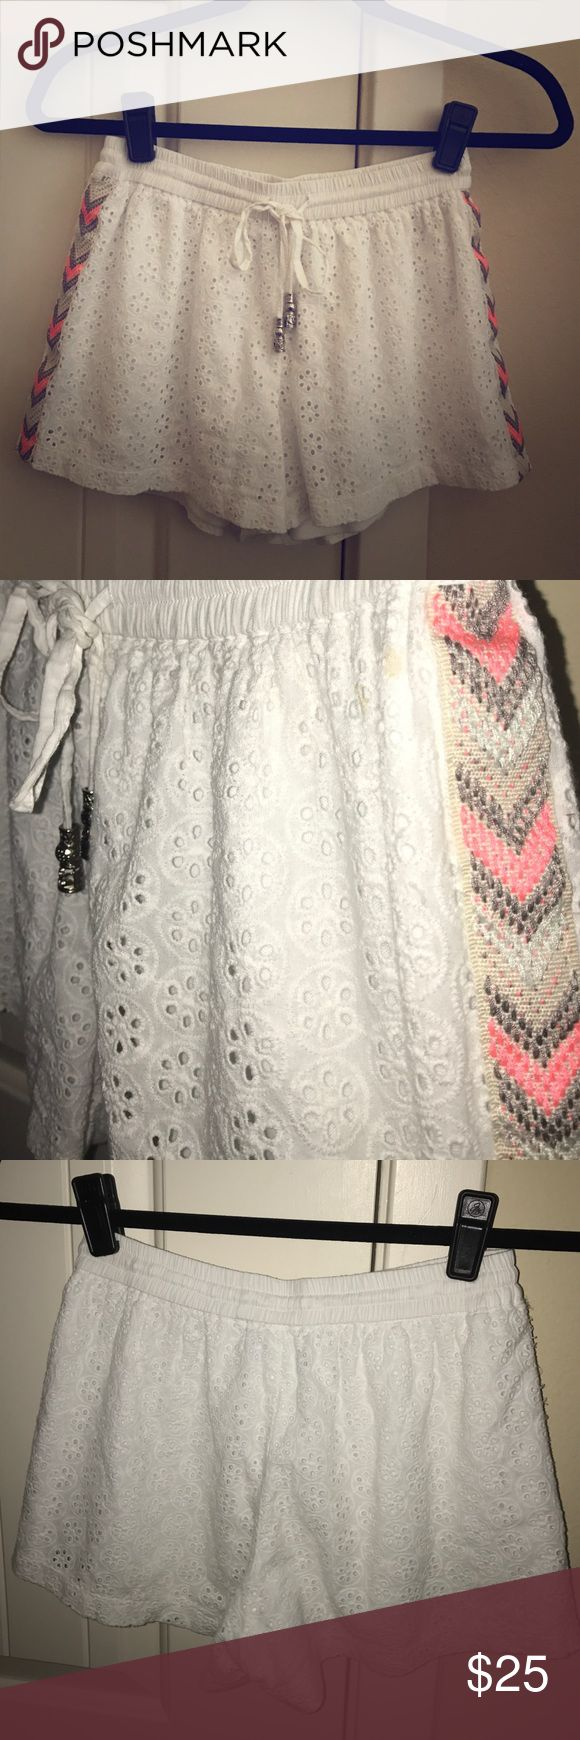 White Eyelet Shorts with Chevron Sides White eyelet shorts with gray/pink/taupe chevron detail down the sides. Drawstrings have adorable silver beads. One very very small stain on the waistband usually hidden by a shirt, but is not very obvious. Will accept offers! Francesca's Collections Shorts